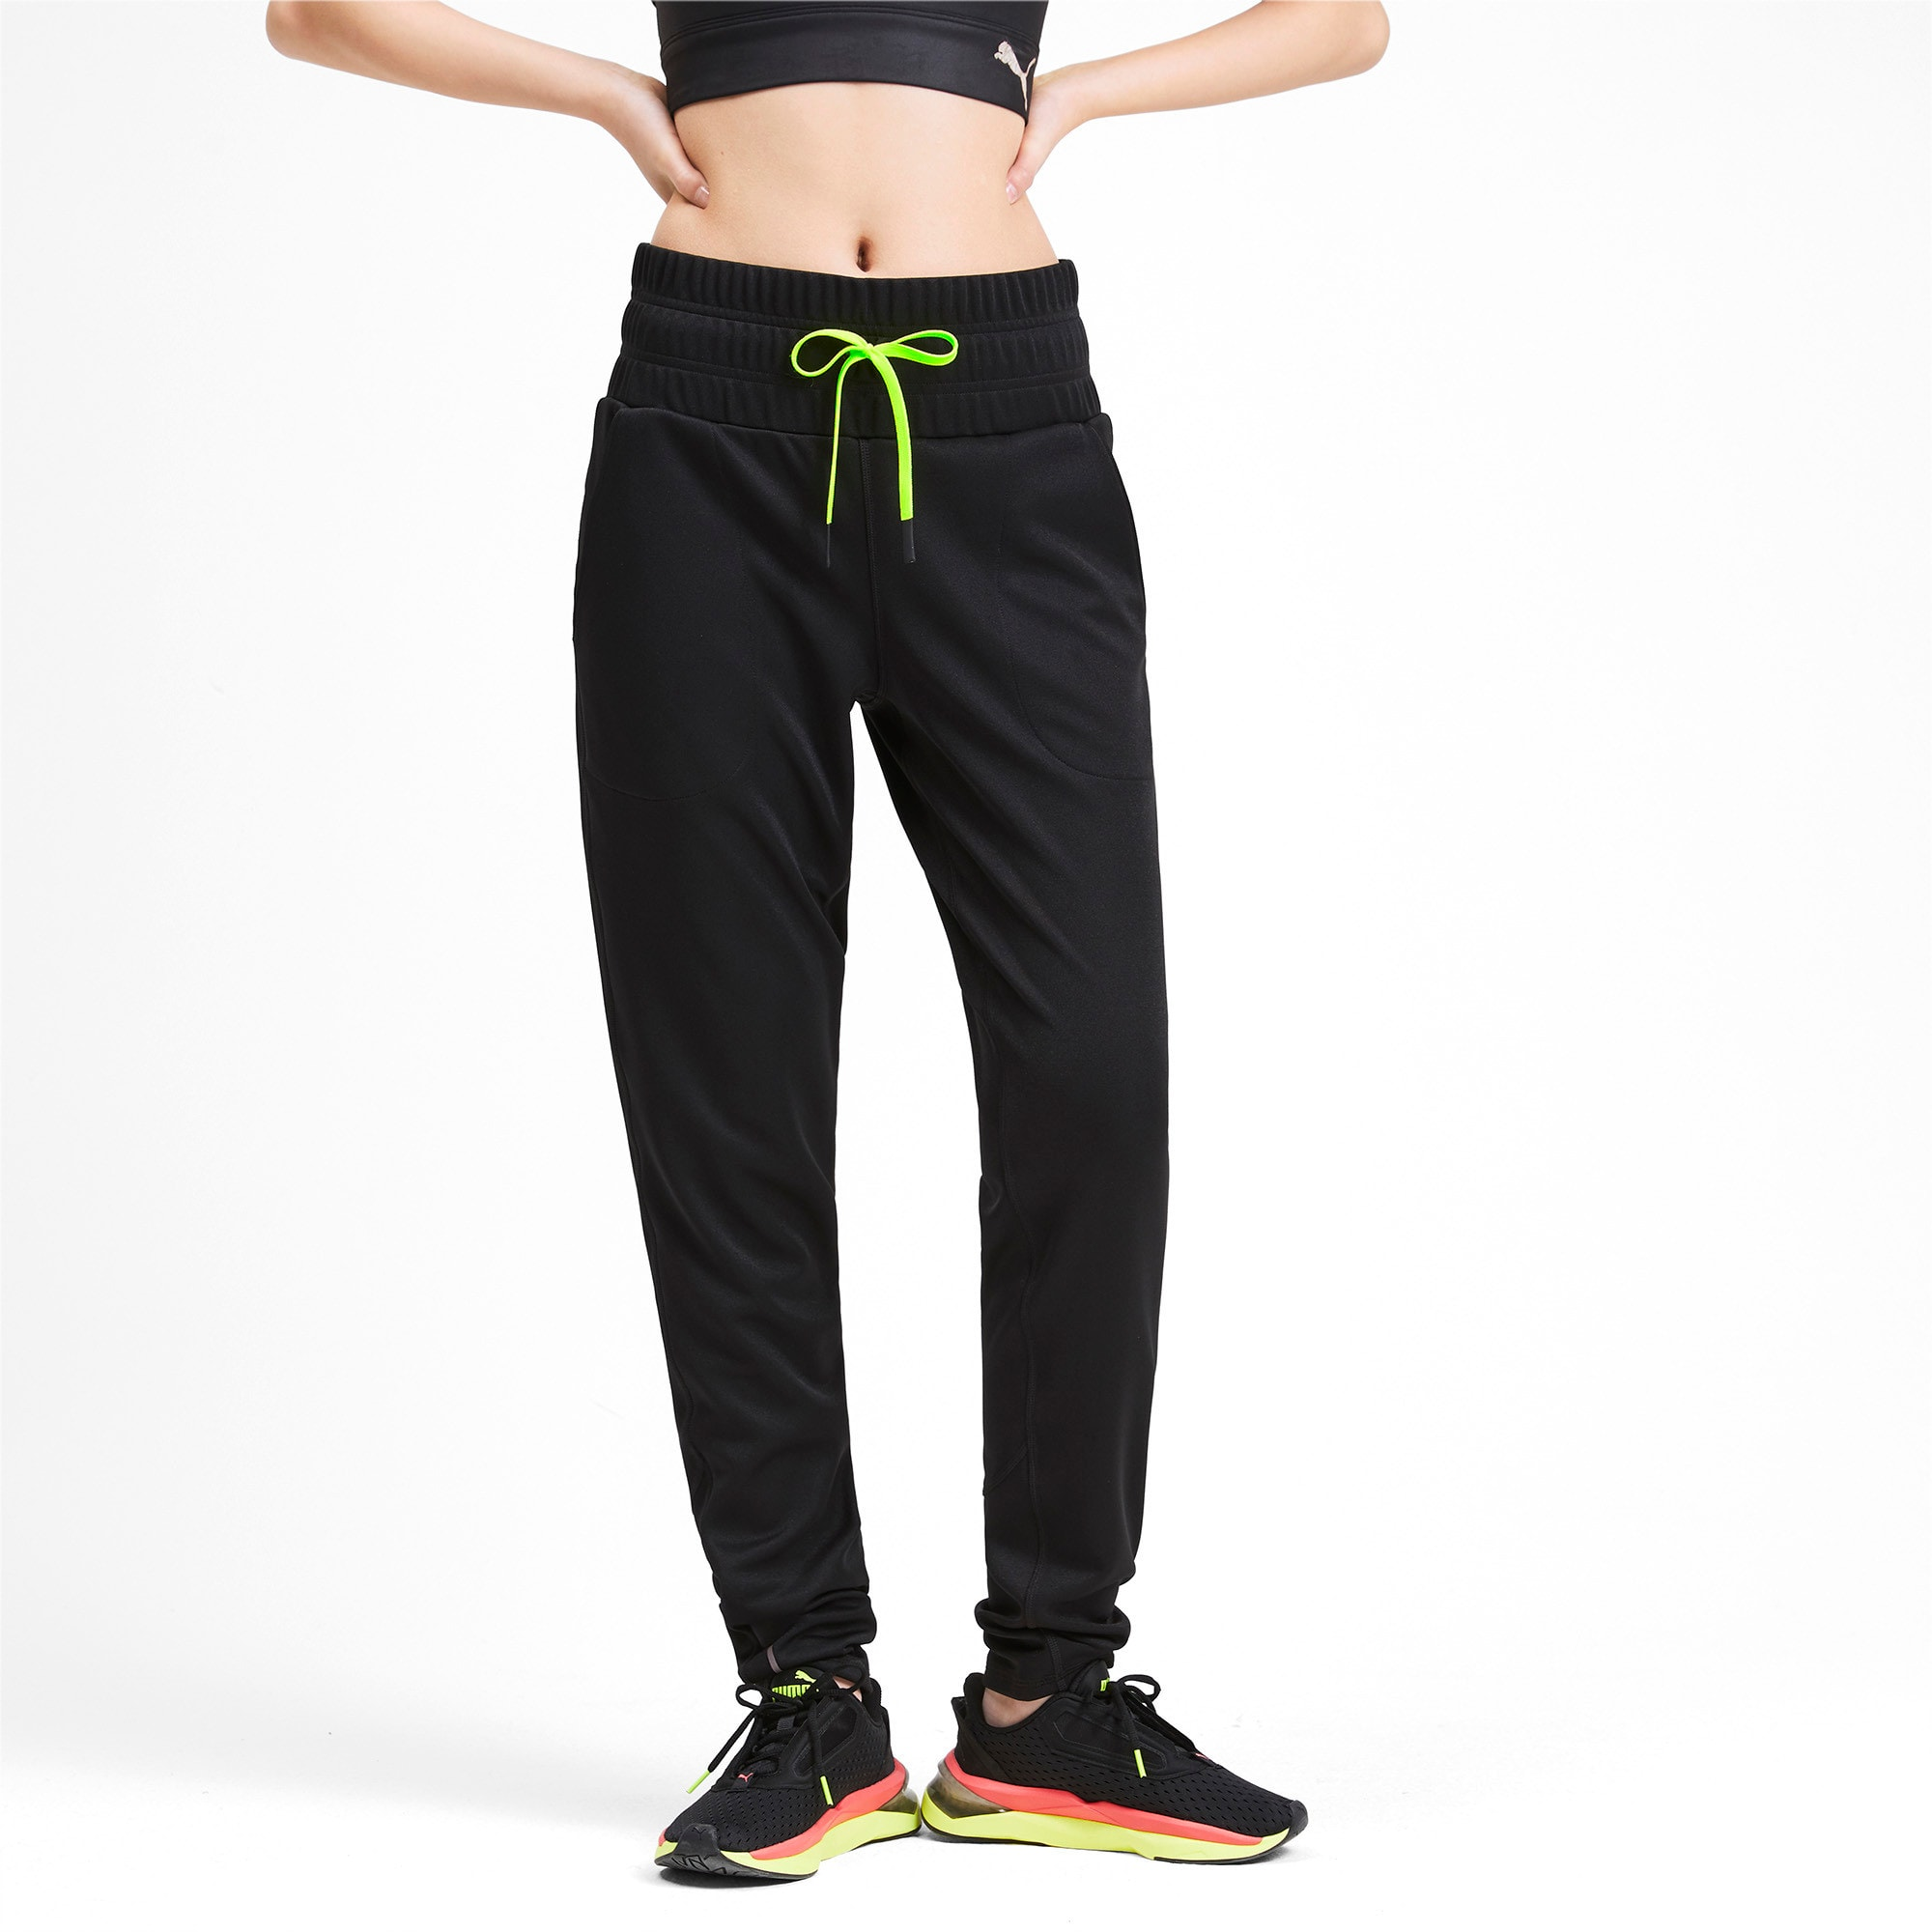 Thumbnail 1 of SHIFT Damen Training Gestrickte Sweatpants, Puma Black, medium